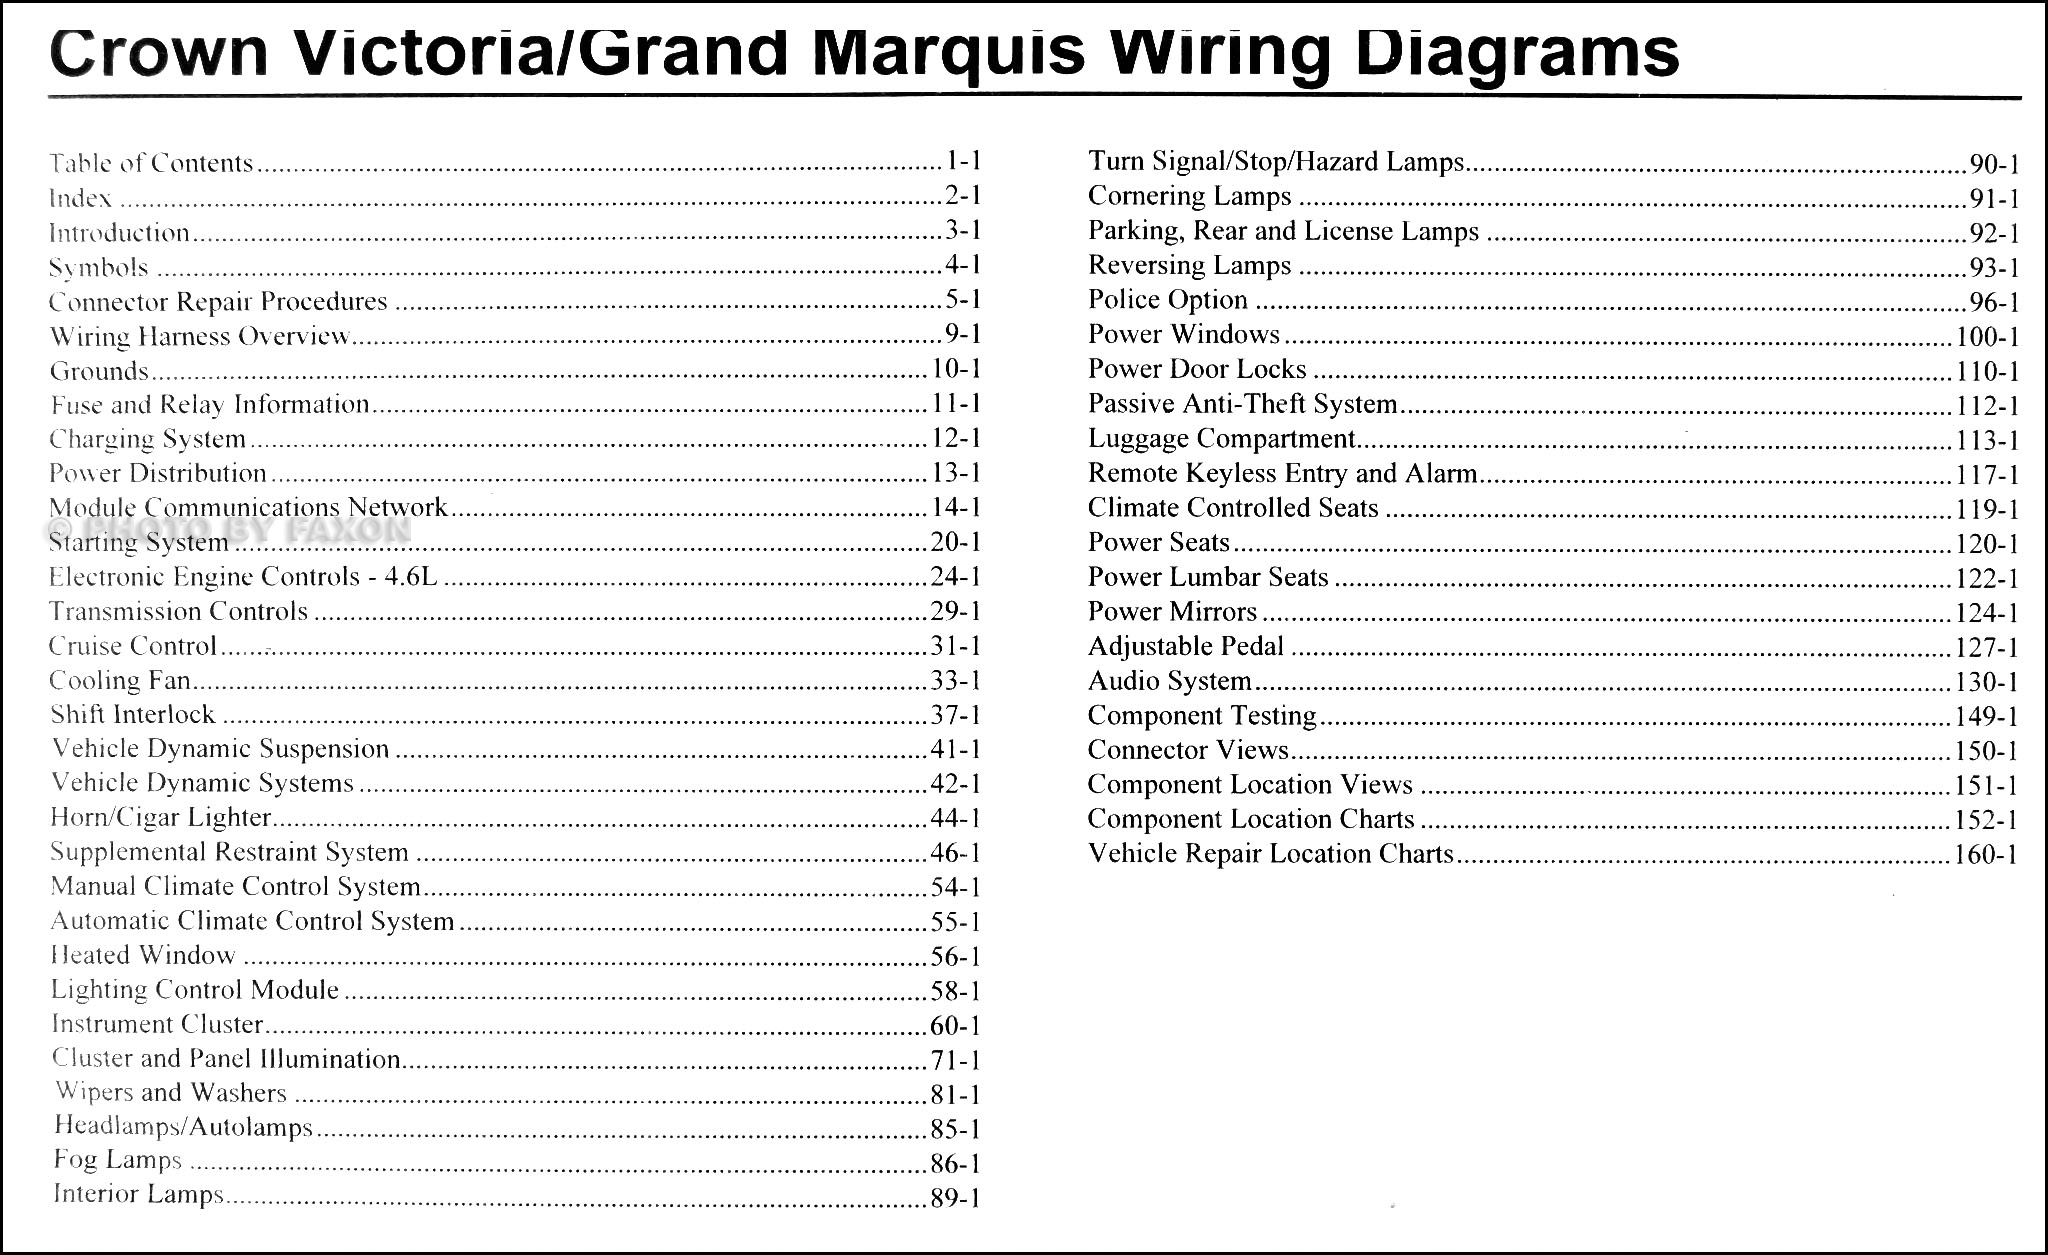 2010 Crown Victoria Wiring Diagram Diagrams Ford Interceptor Grand Marquis Manual Original Rh Faxonautoliterature Com Vic